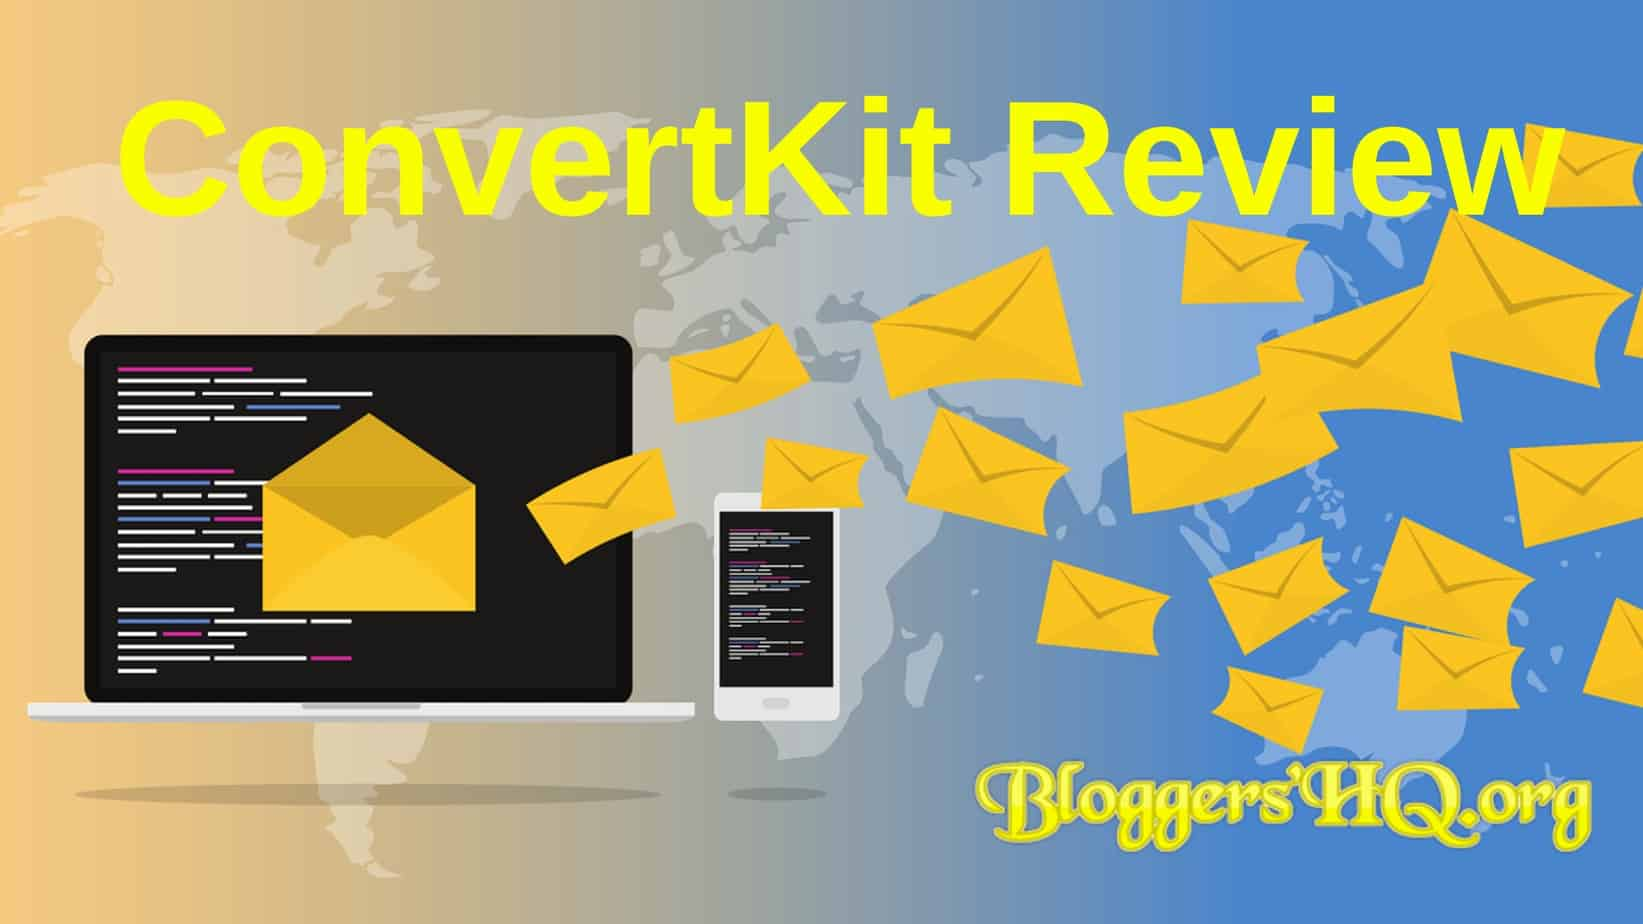 Customer Appreciation Code Convertkit Email Marketing May 2020